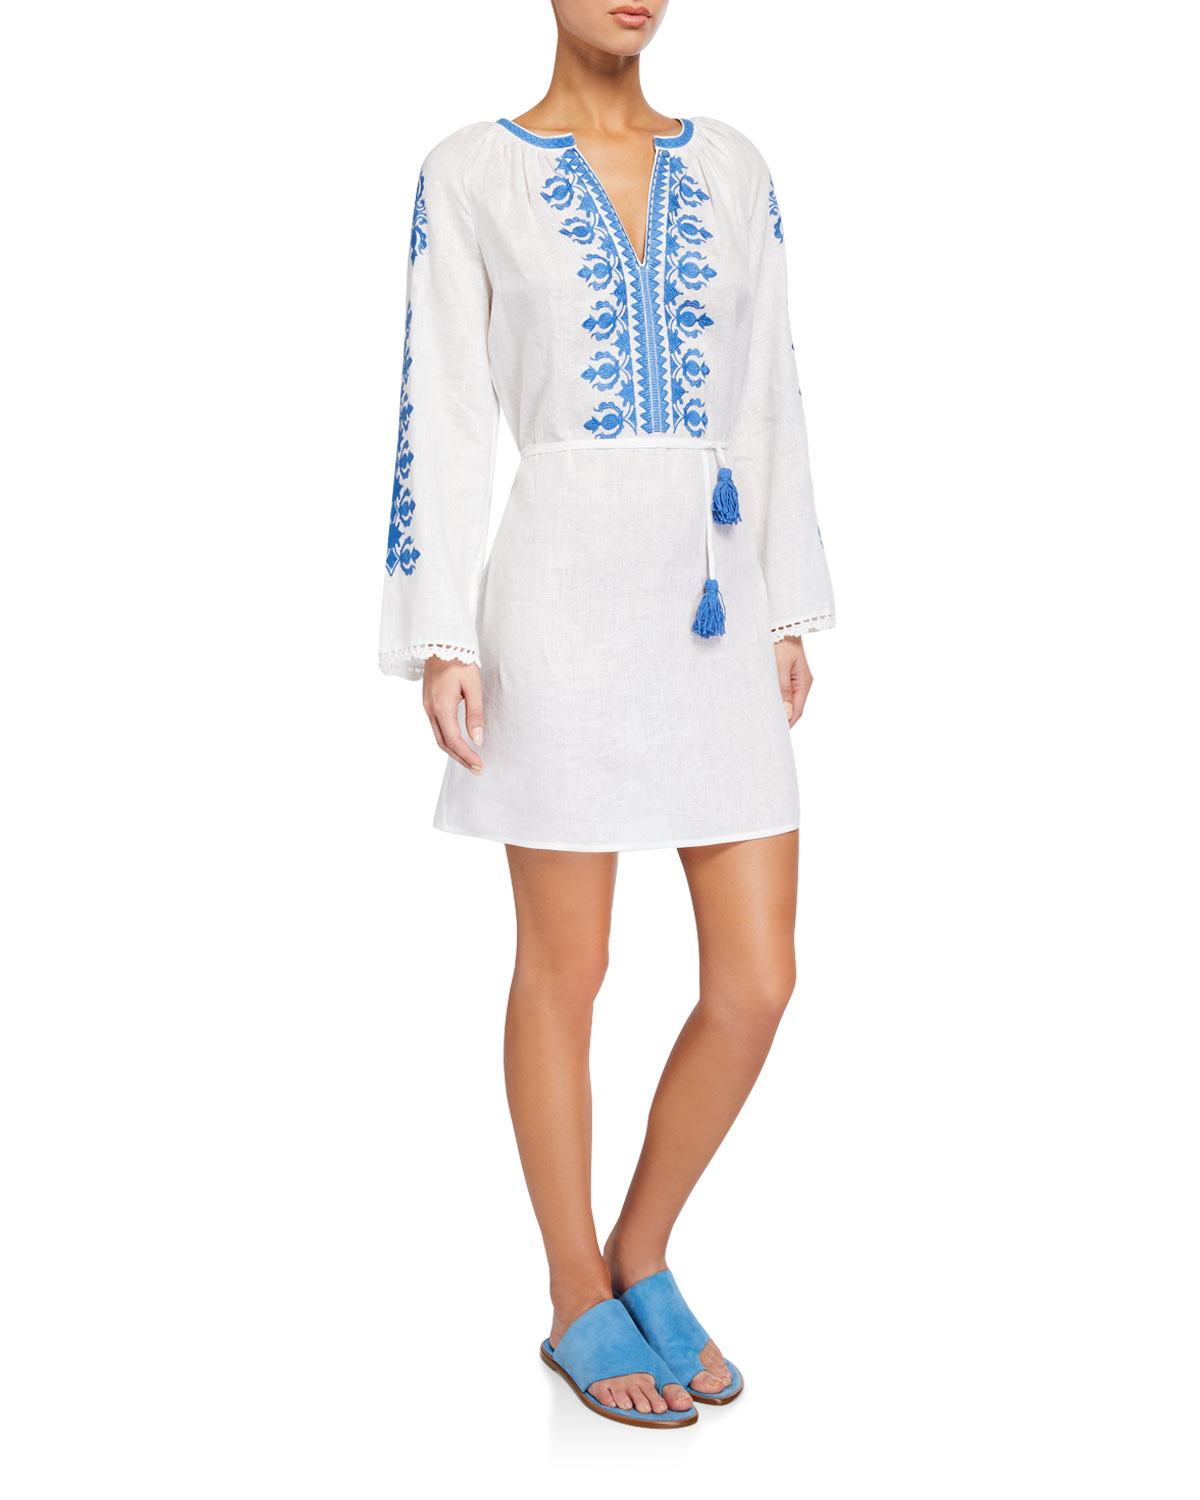 Tory Burch Dress Embroidered Linen Long-Sleeve Coverup Dress